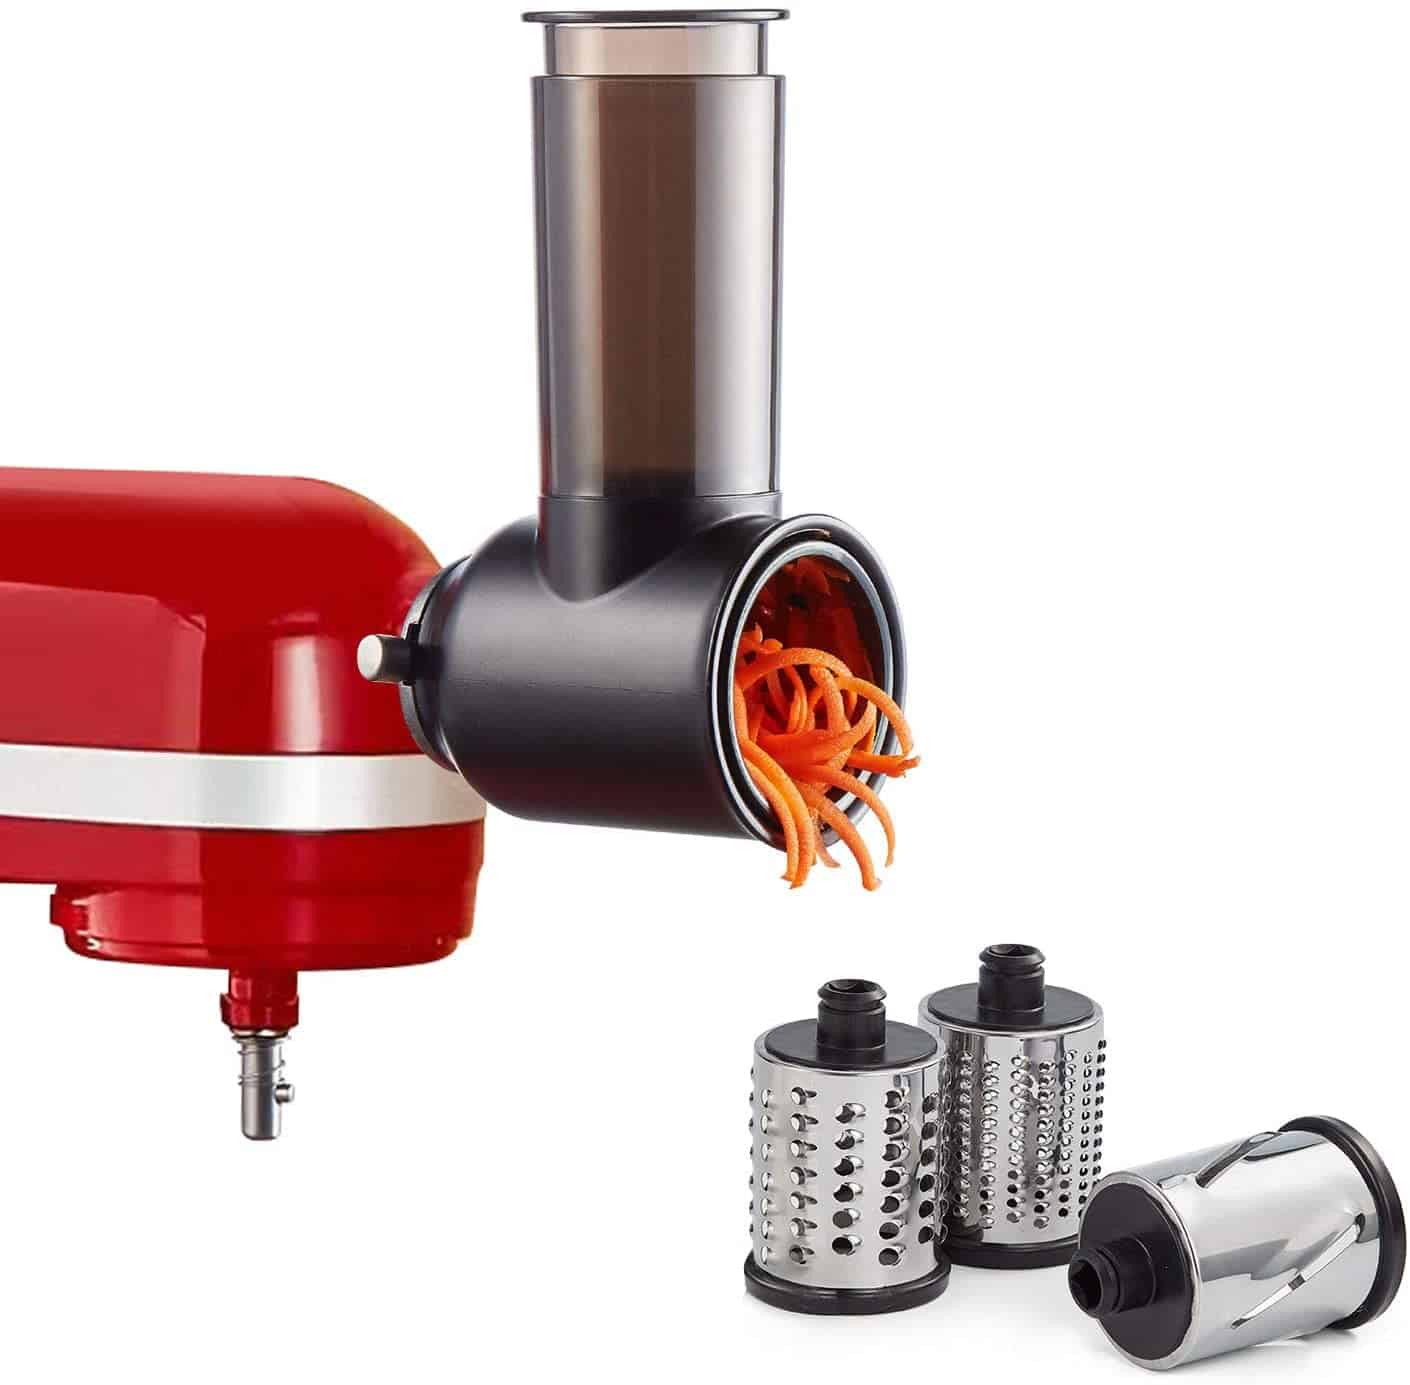 KitchenAid Slicer and Grater Attachment for Cheese and Vegetables